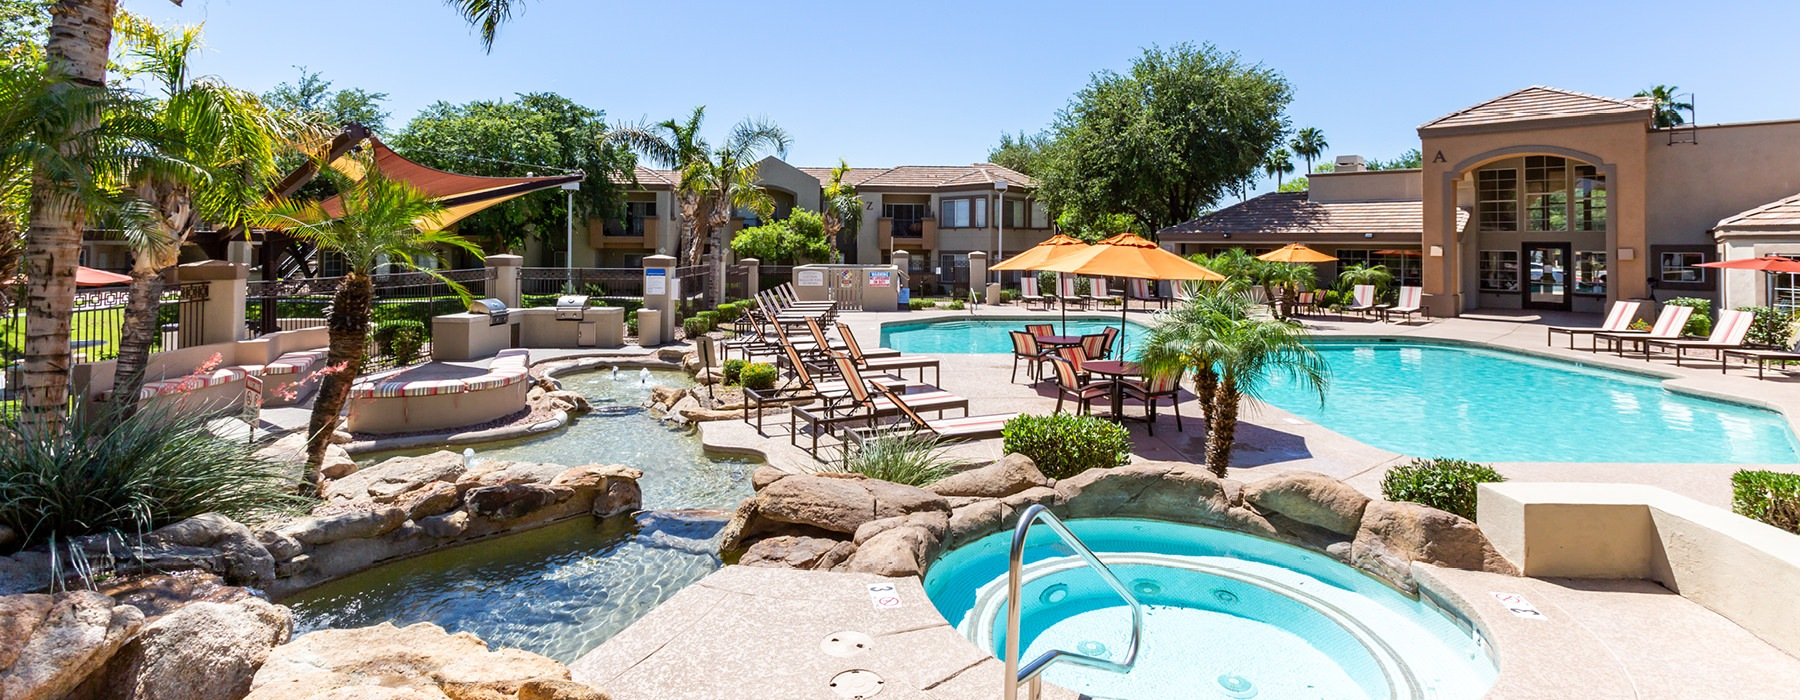 Large pool with hot tub and pool side seating with umbrellas.